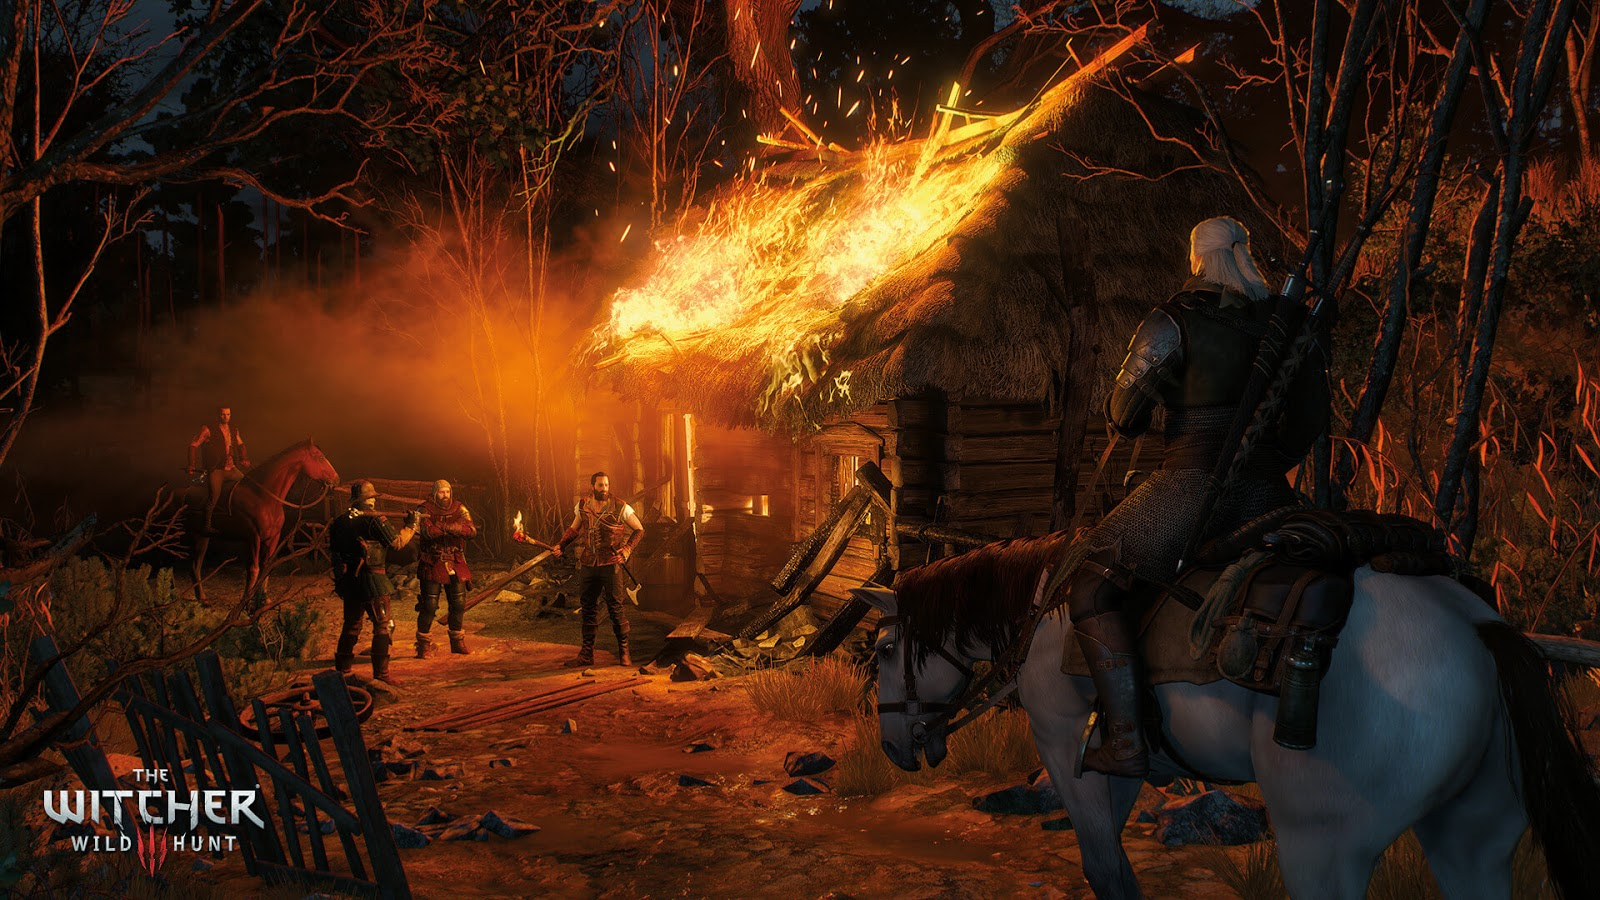 New Update For The Witcher 3 Patch 1.32 Adds Simplified Chinese Support